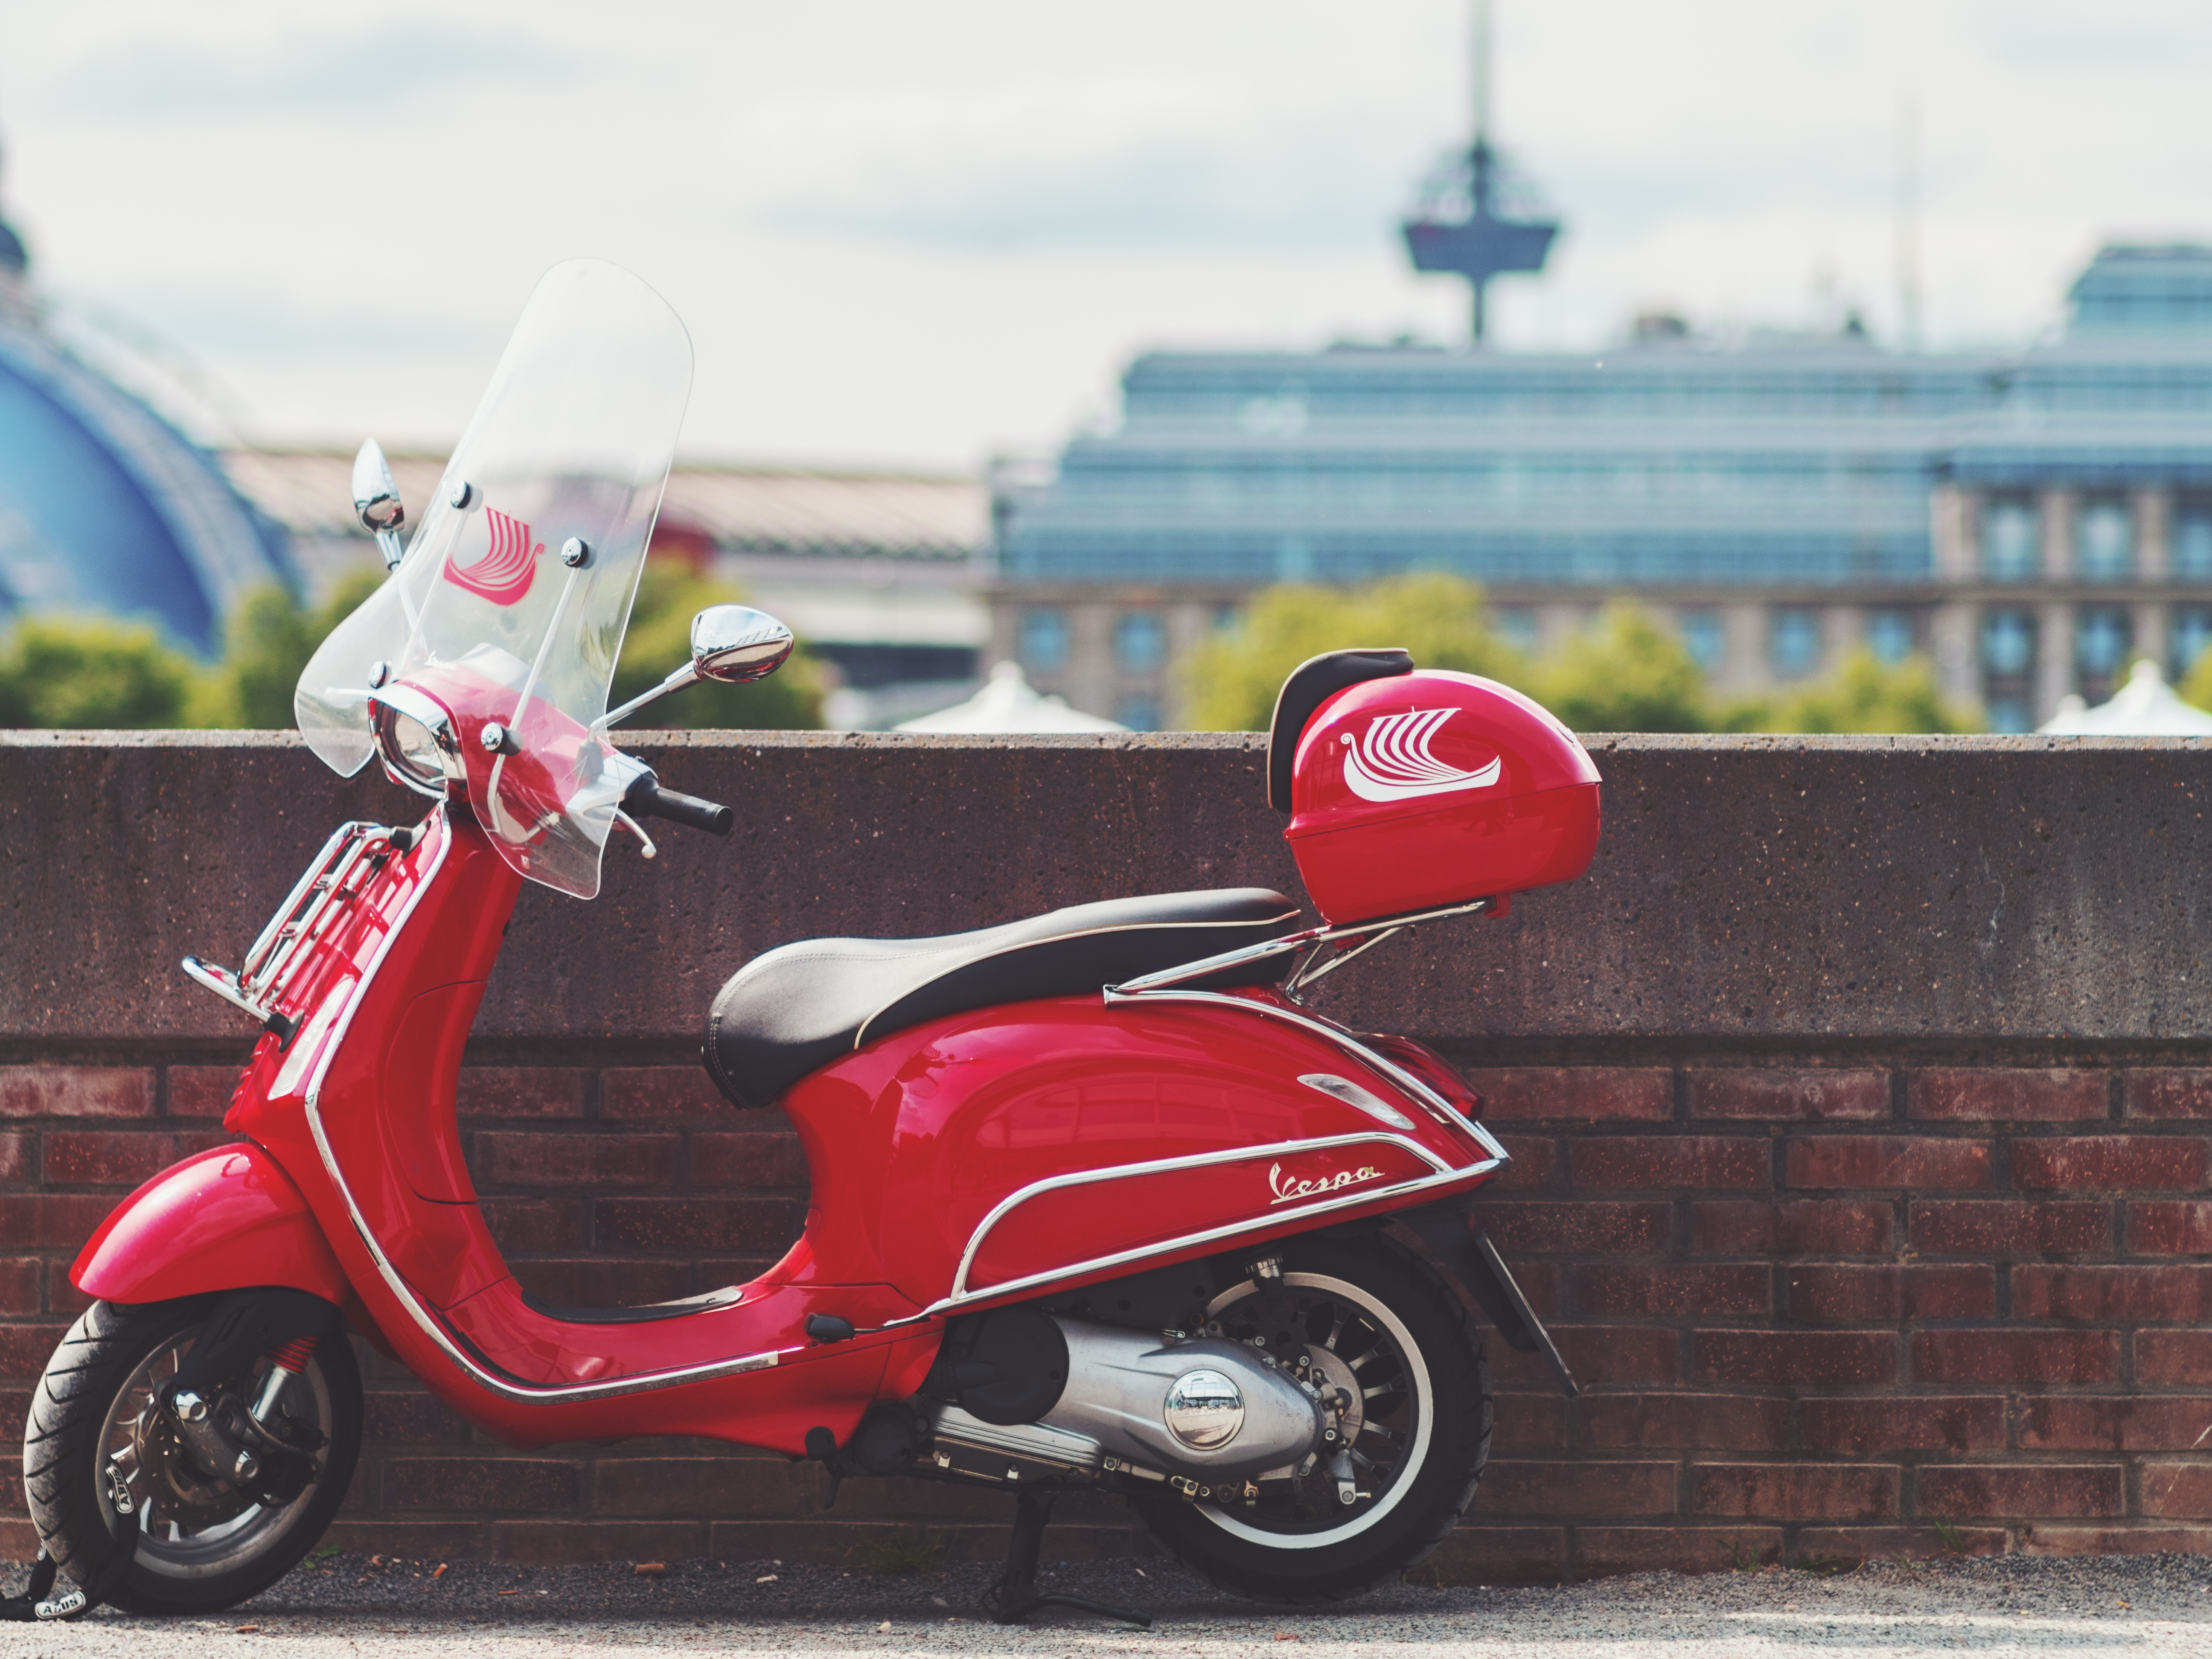 scooter_red_transport_115671_5184x3888